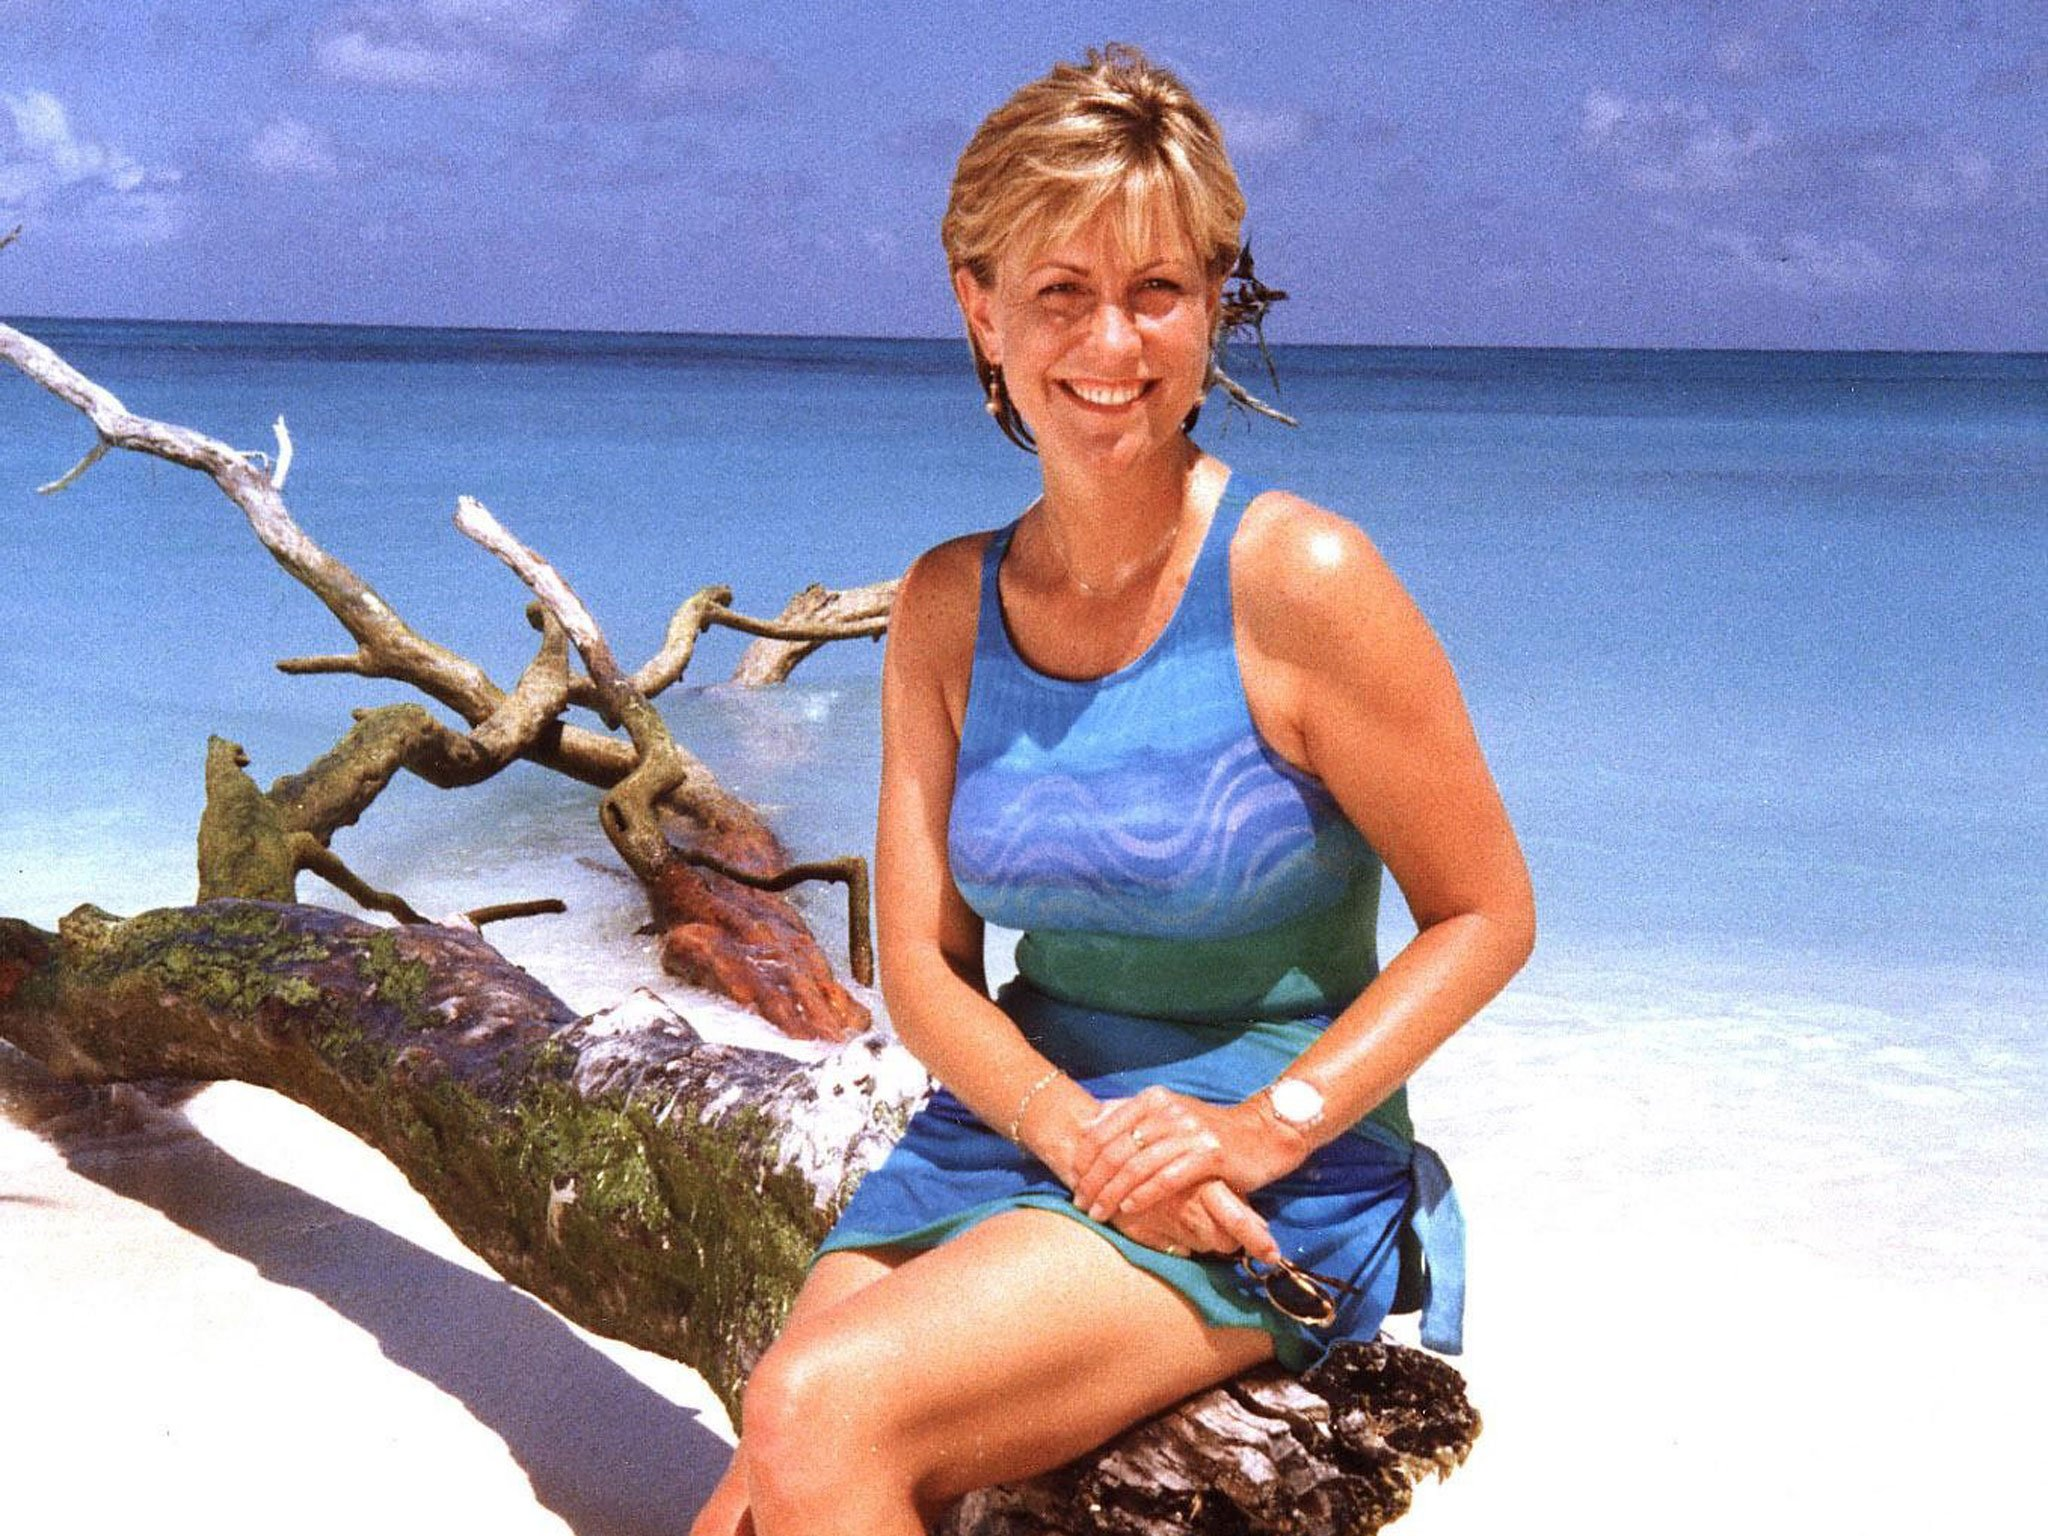 Jill Dando: It's 20 years since one of the BBC's most popular journalists was murdered